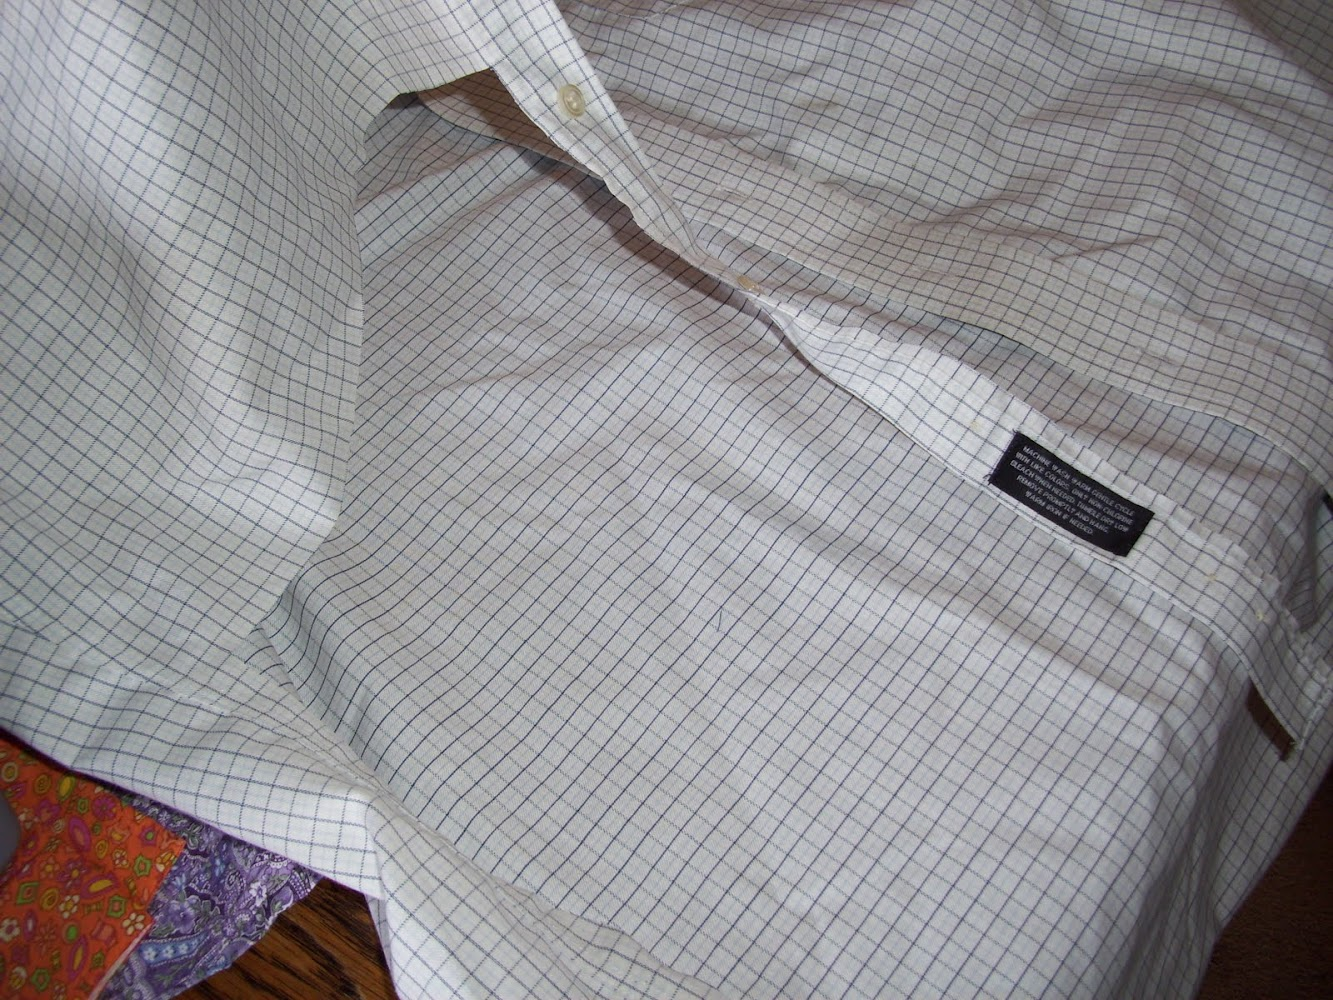 Making Cloth Napkins from an Old Shirt